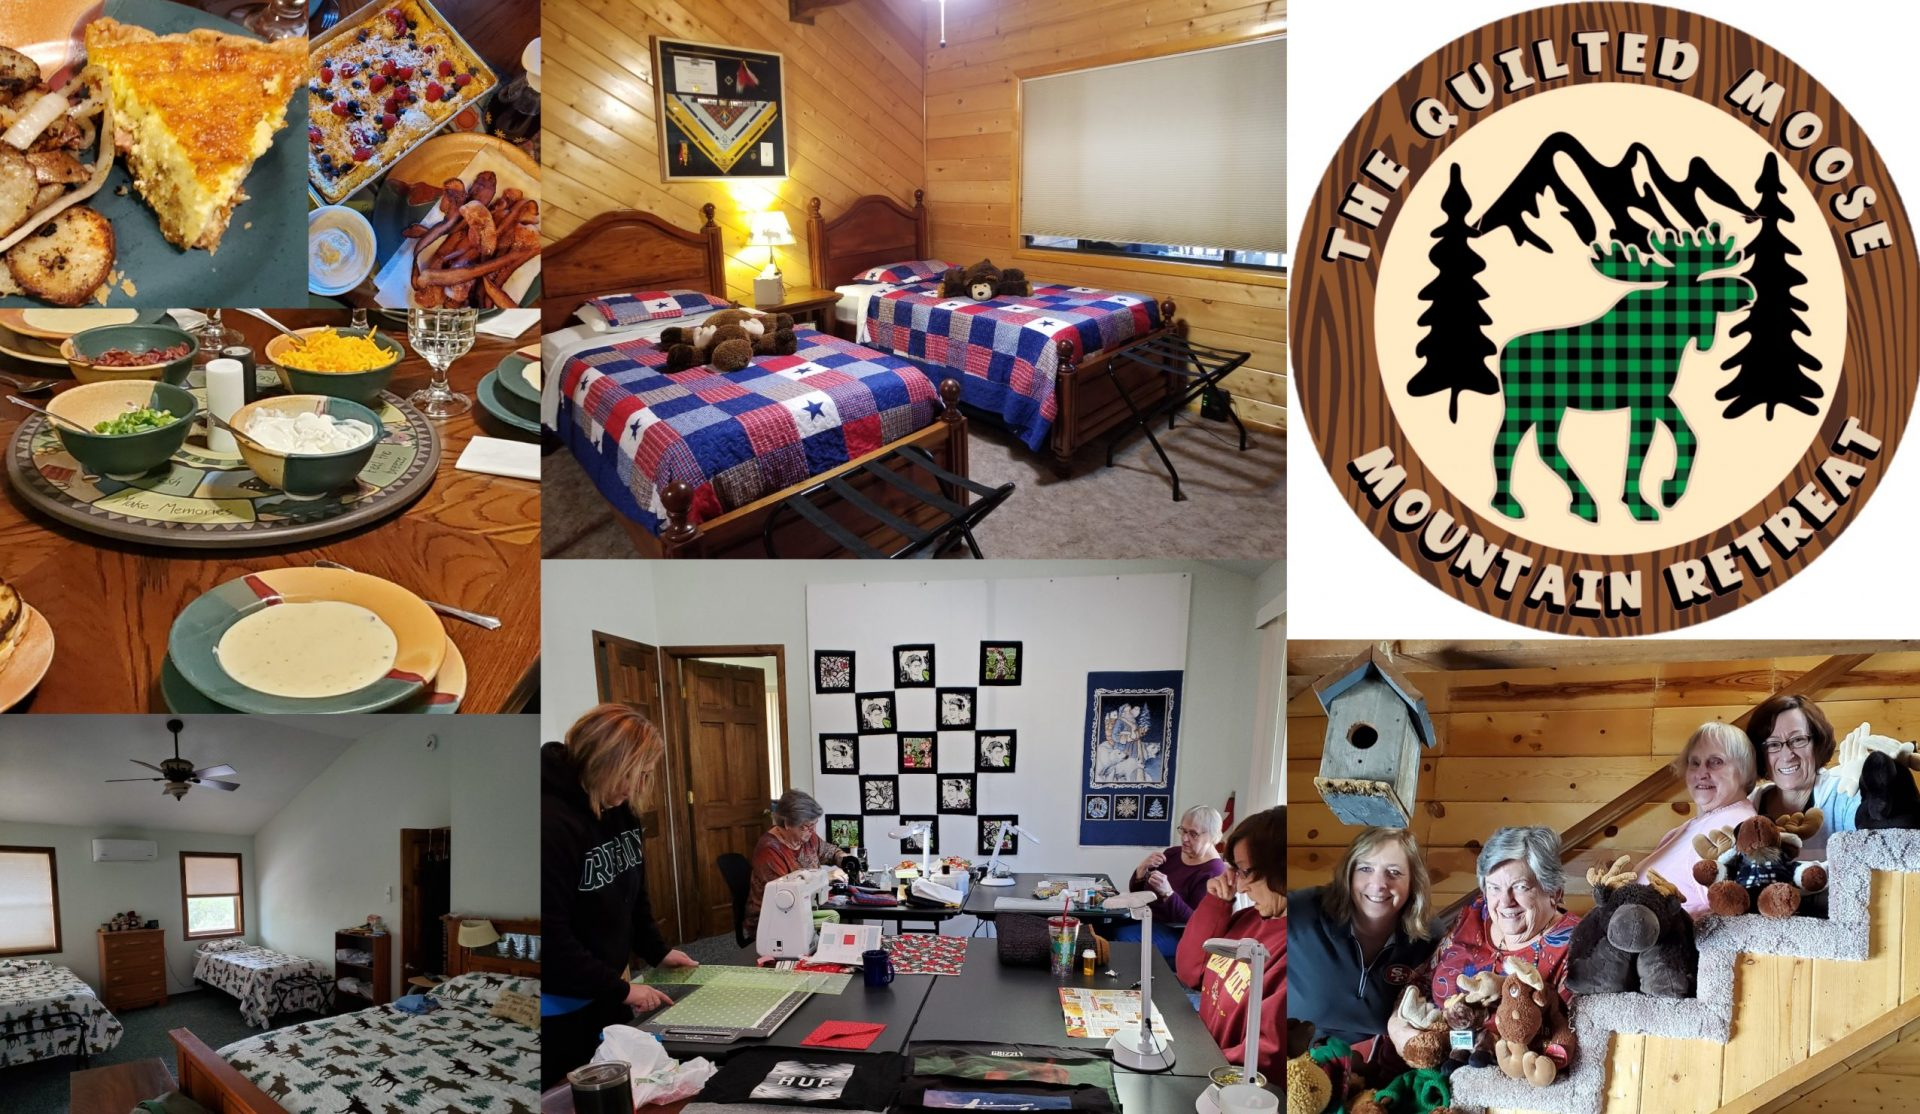 The Quilted Moose Mountain Retreat